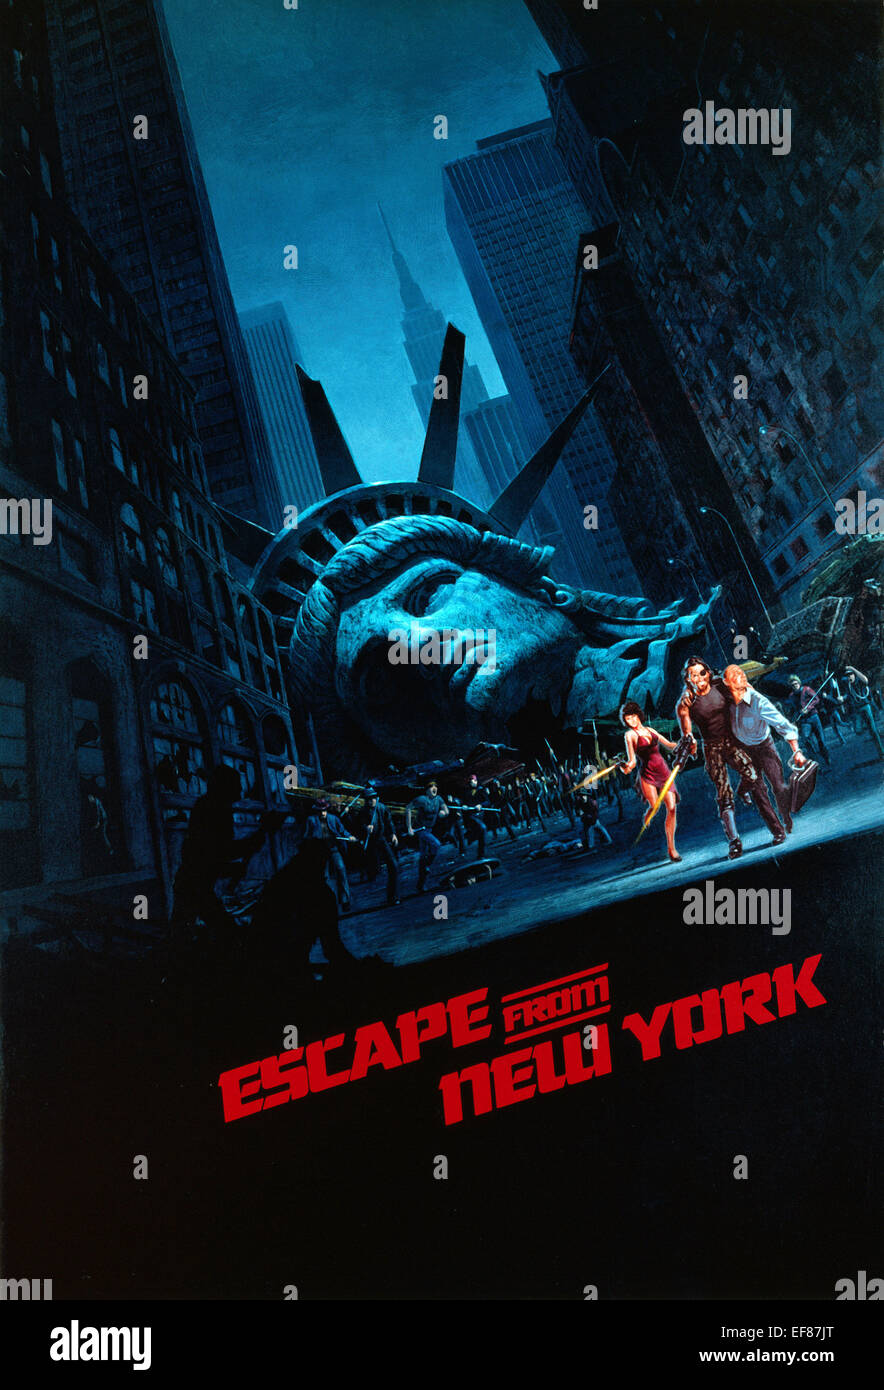 Escape From New York Poster.Movie Poster Escape From New York 1981 Stock Photo 78242944 Alamy